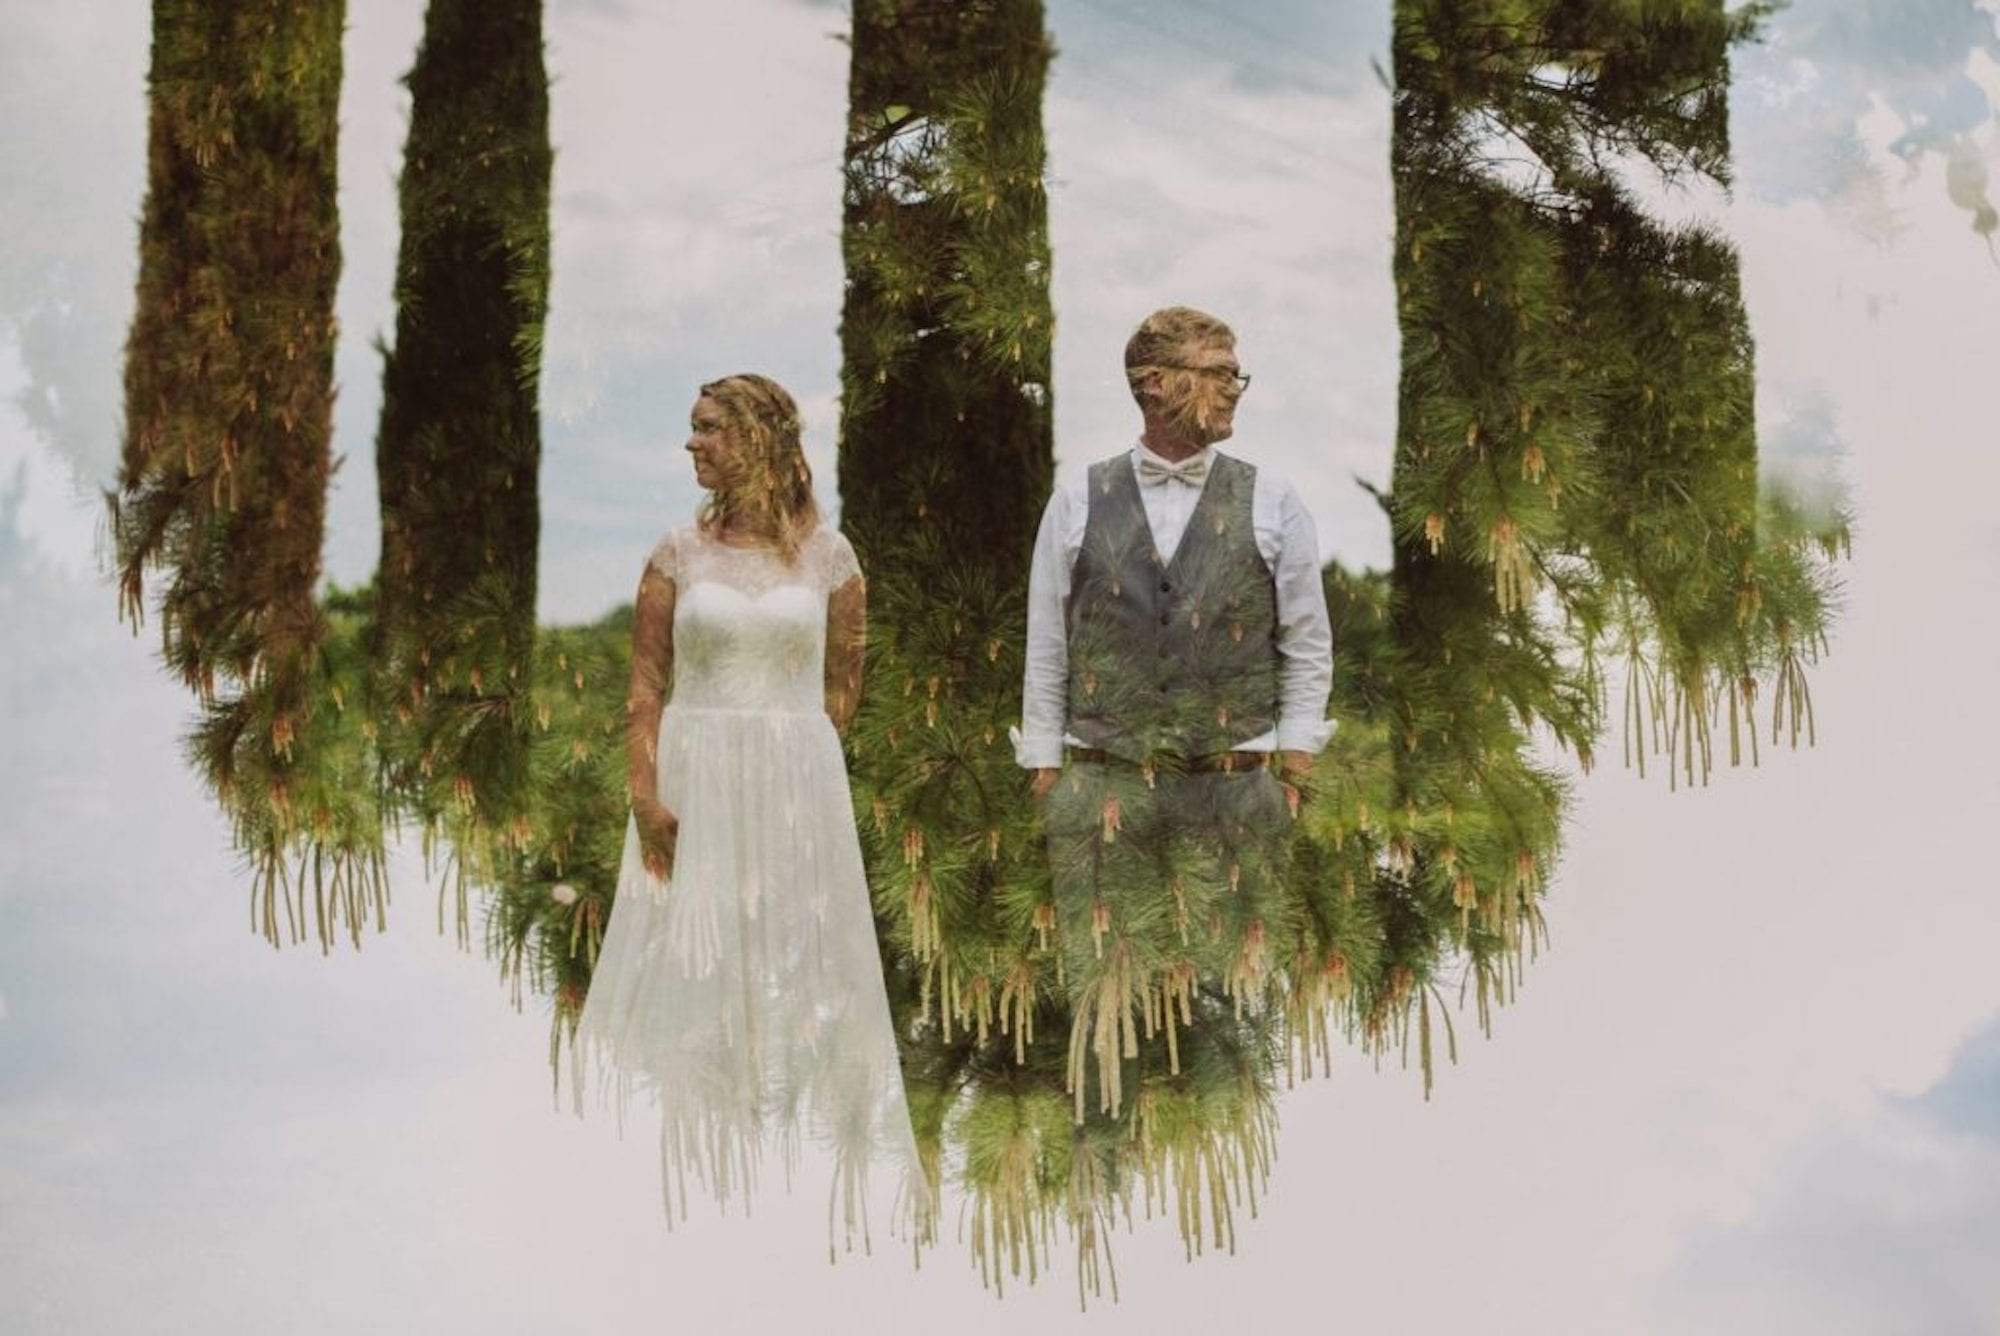 09 double Exposure Wedding photography  - Doppelbelichtungen in der Hochzeitsfotografie